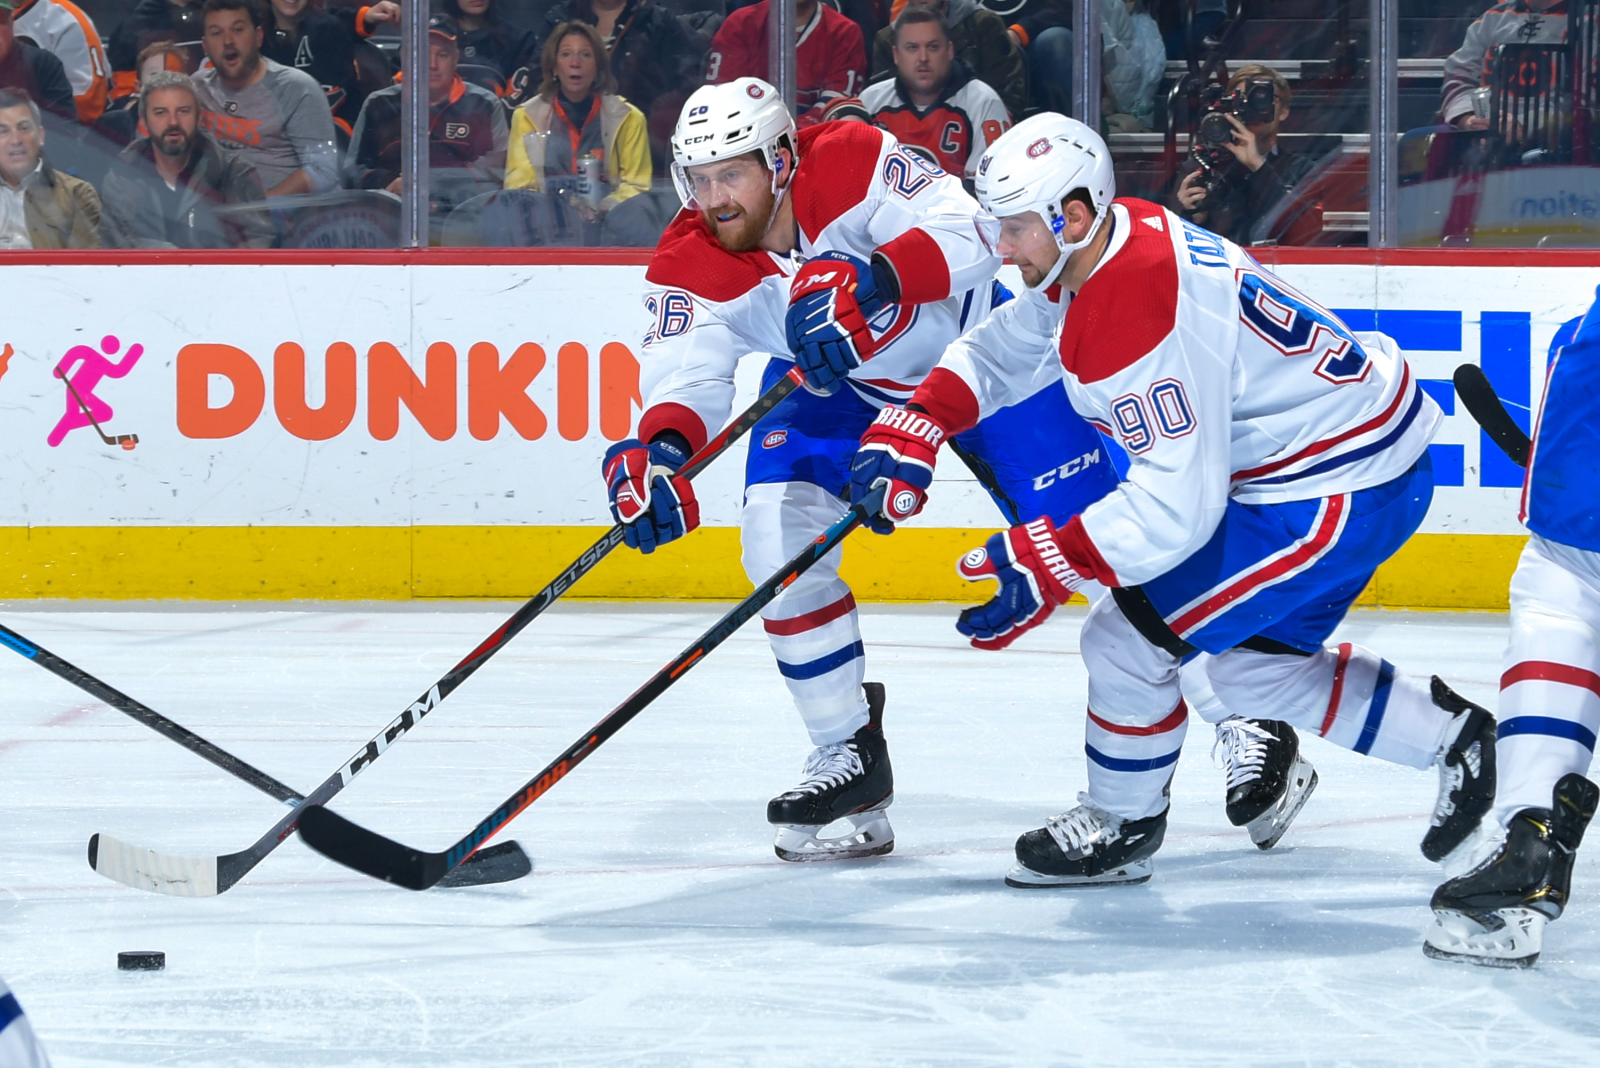 Montreal Canadiens: Lessons Learned From Craig Rivet Trade